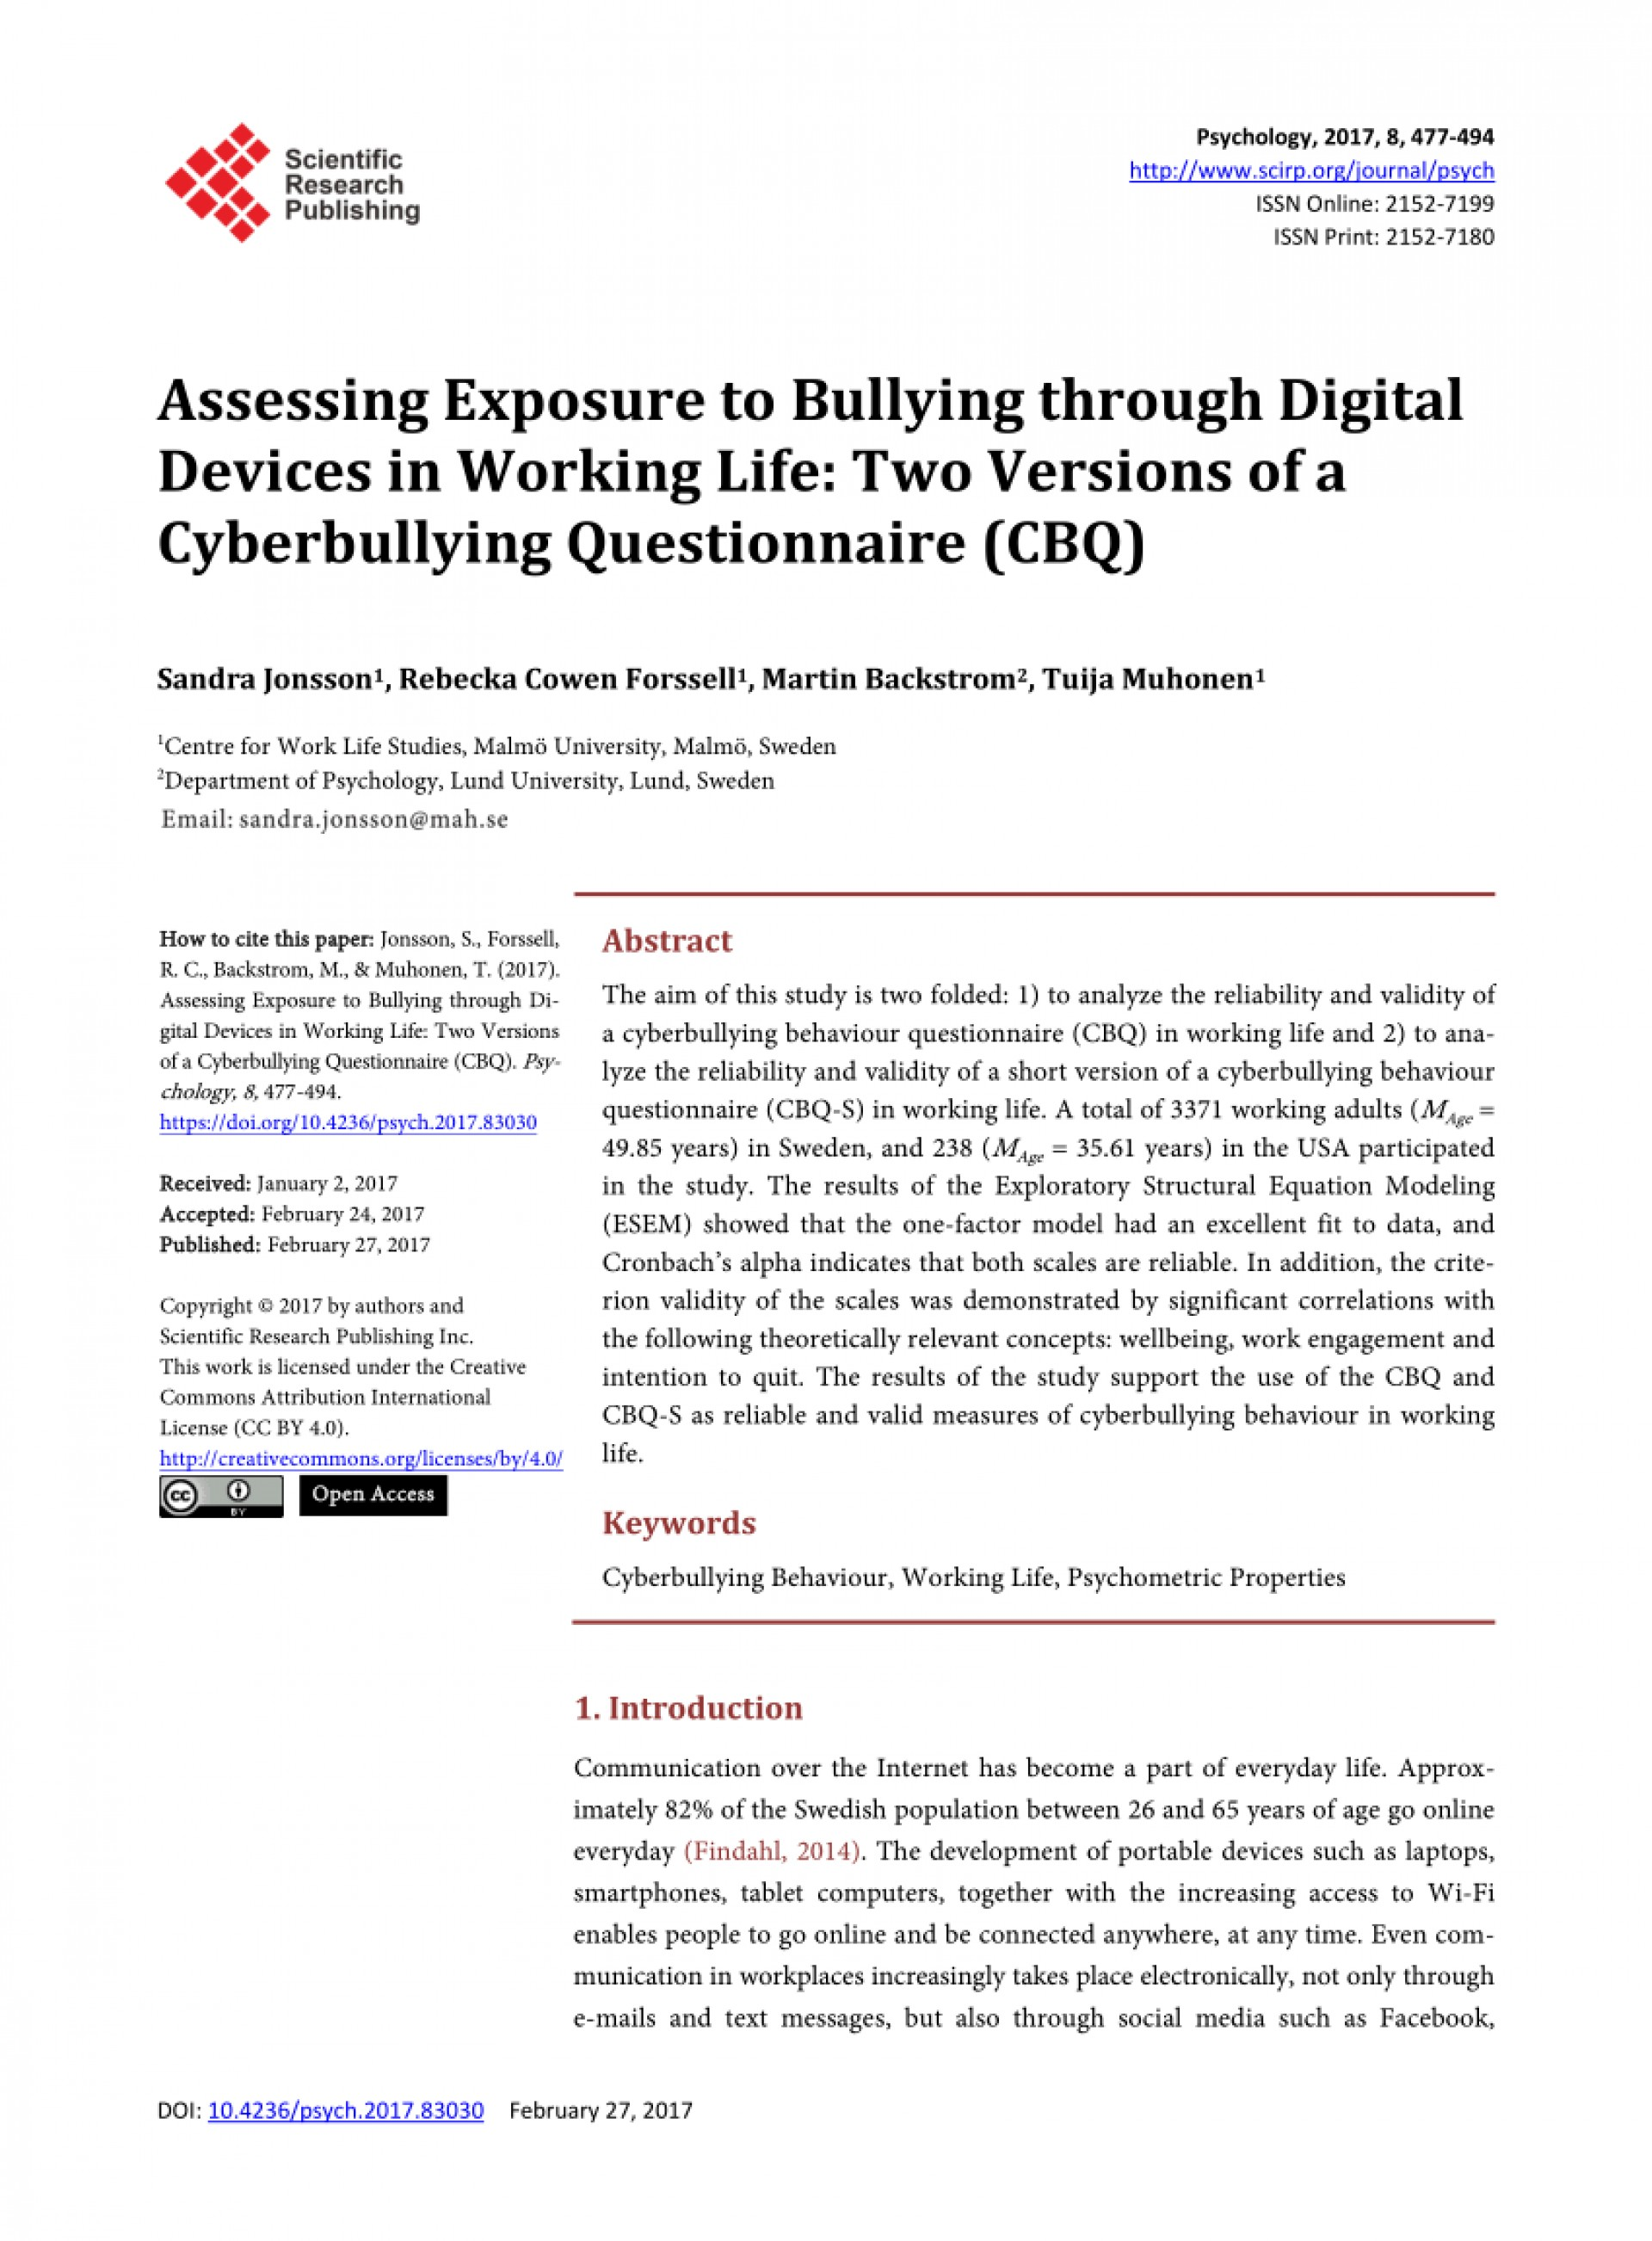 004 Cyberbullying Research Paper Questionnaire Dreaded 1920